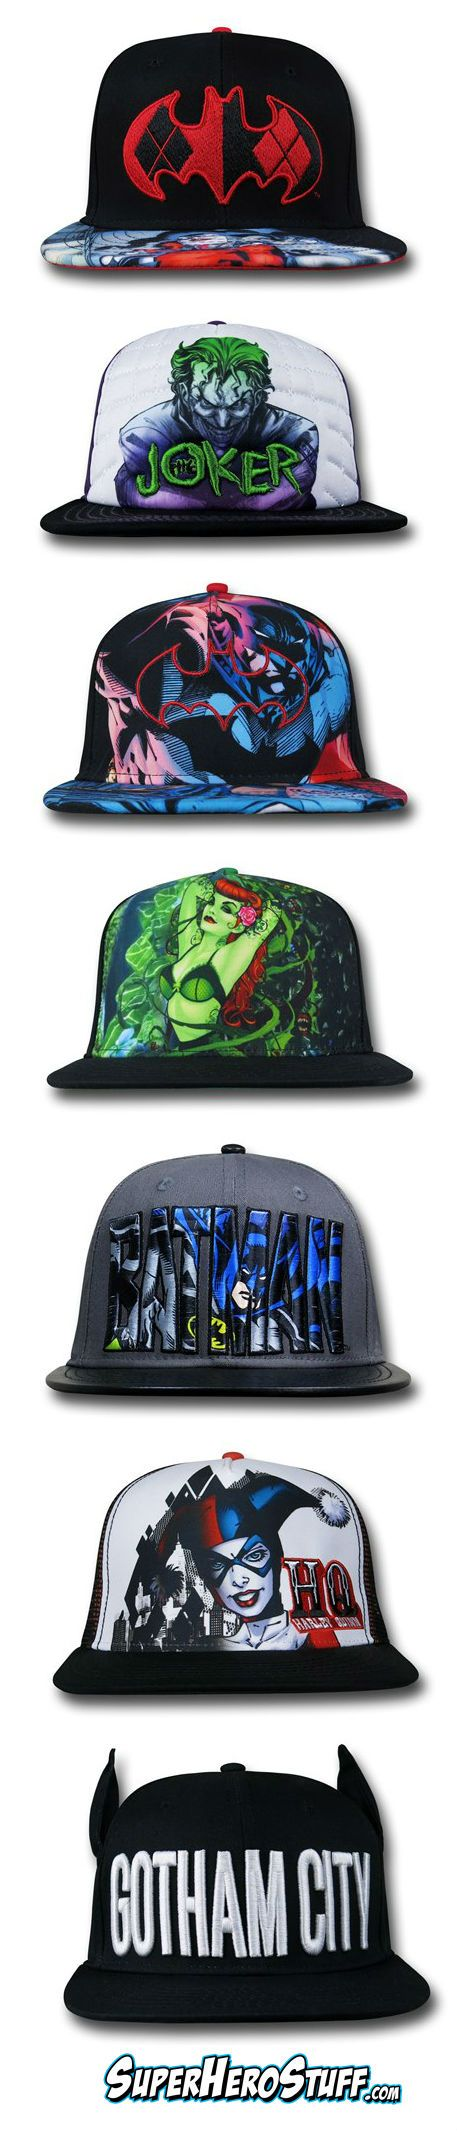 Not New Era but still some pretty Sweet Sublimated Adjustable Batman Hats!